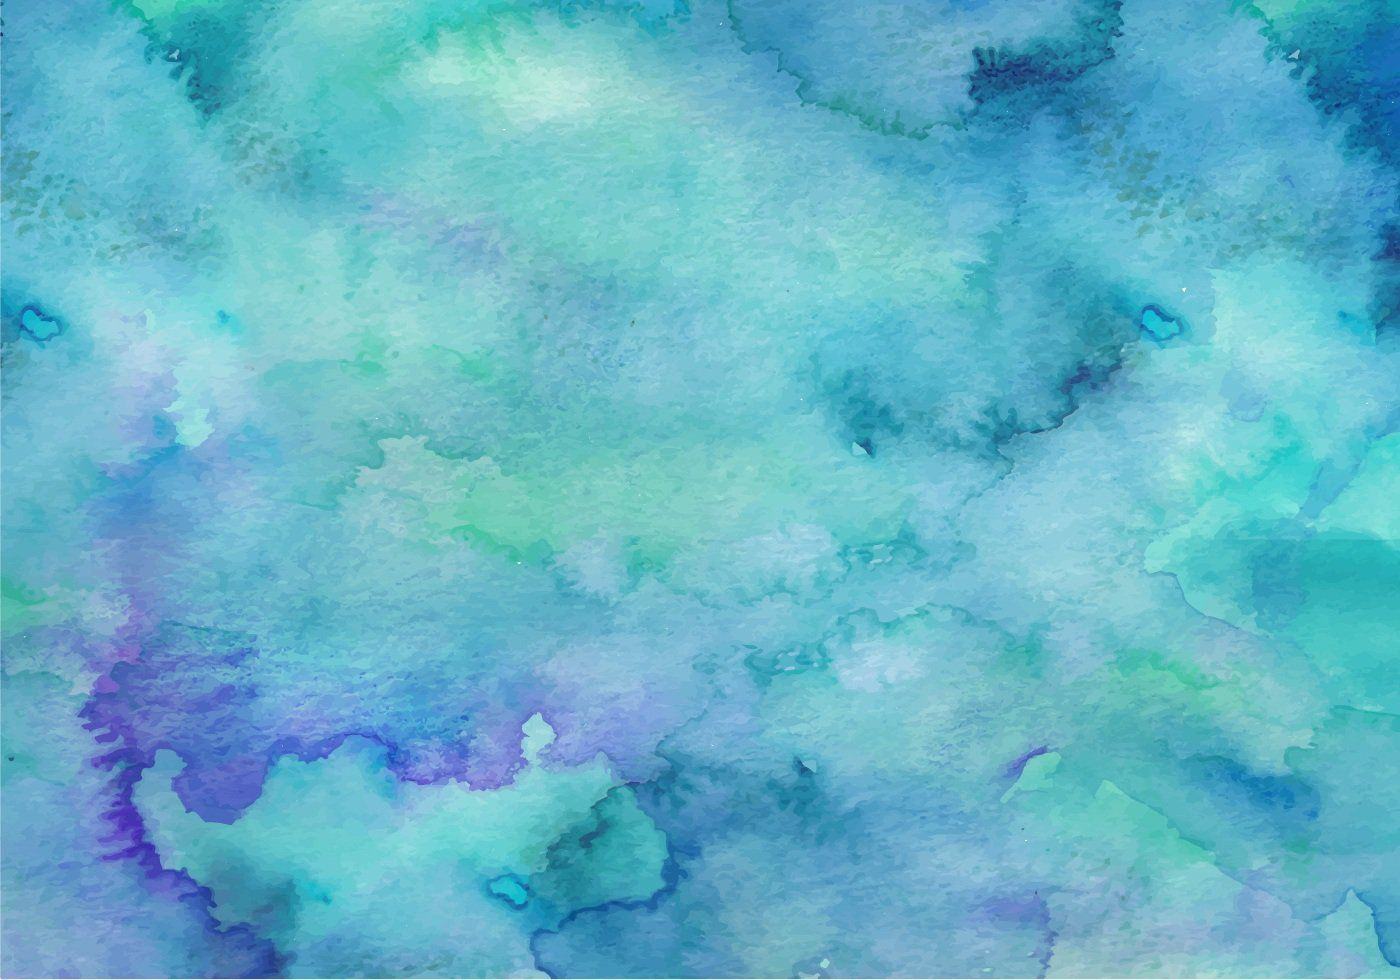 Teal Free Vector Watercolor Background Watercolor